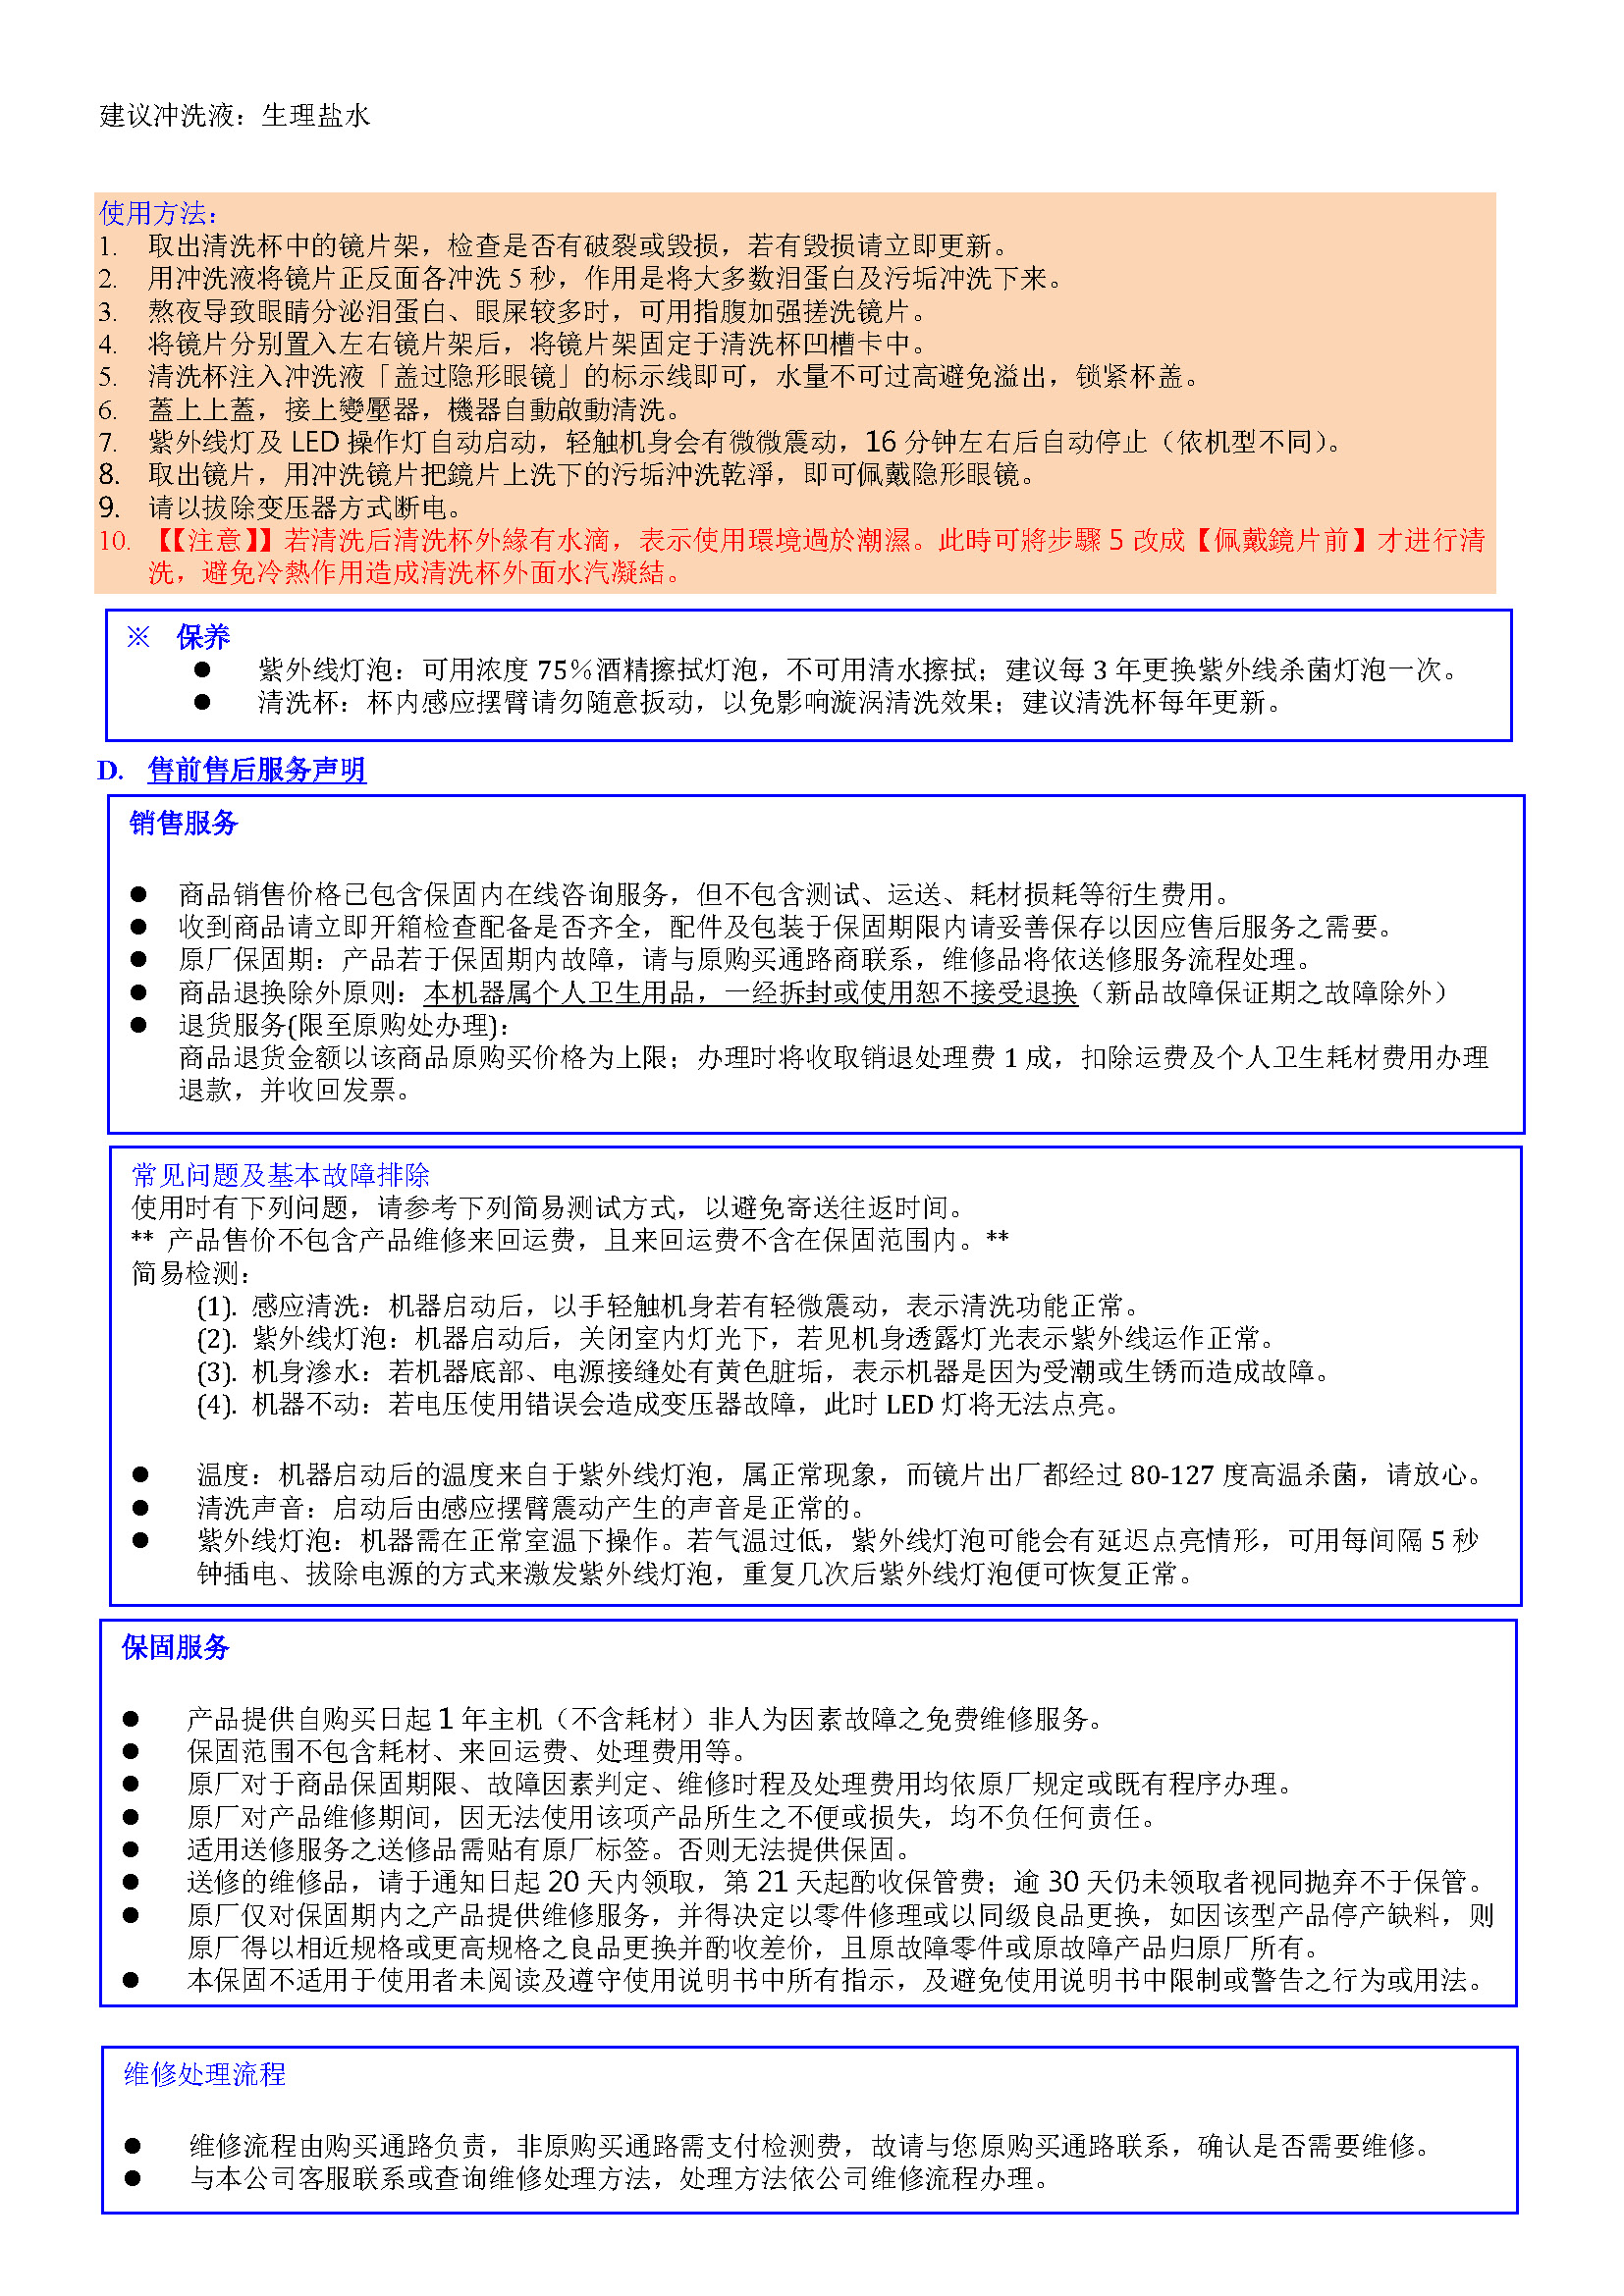 uvlotus user guide china-2